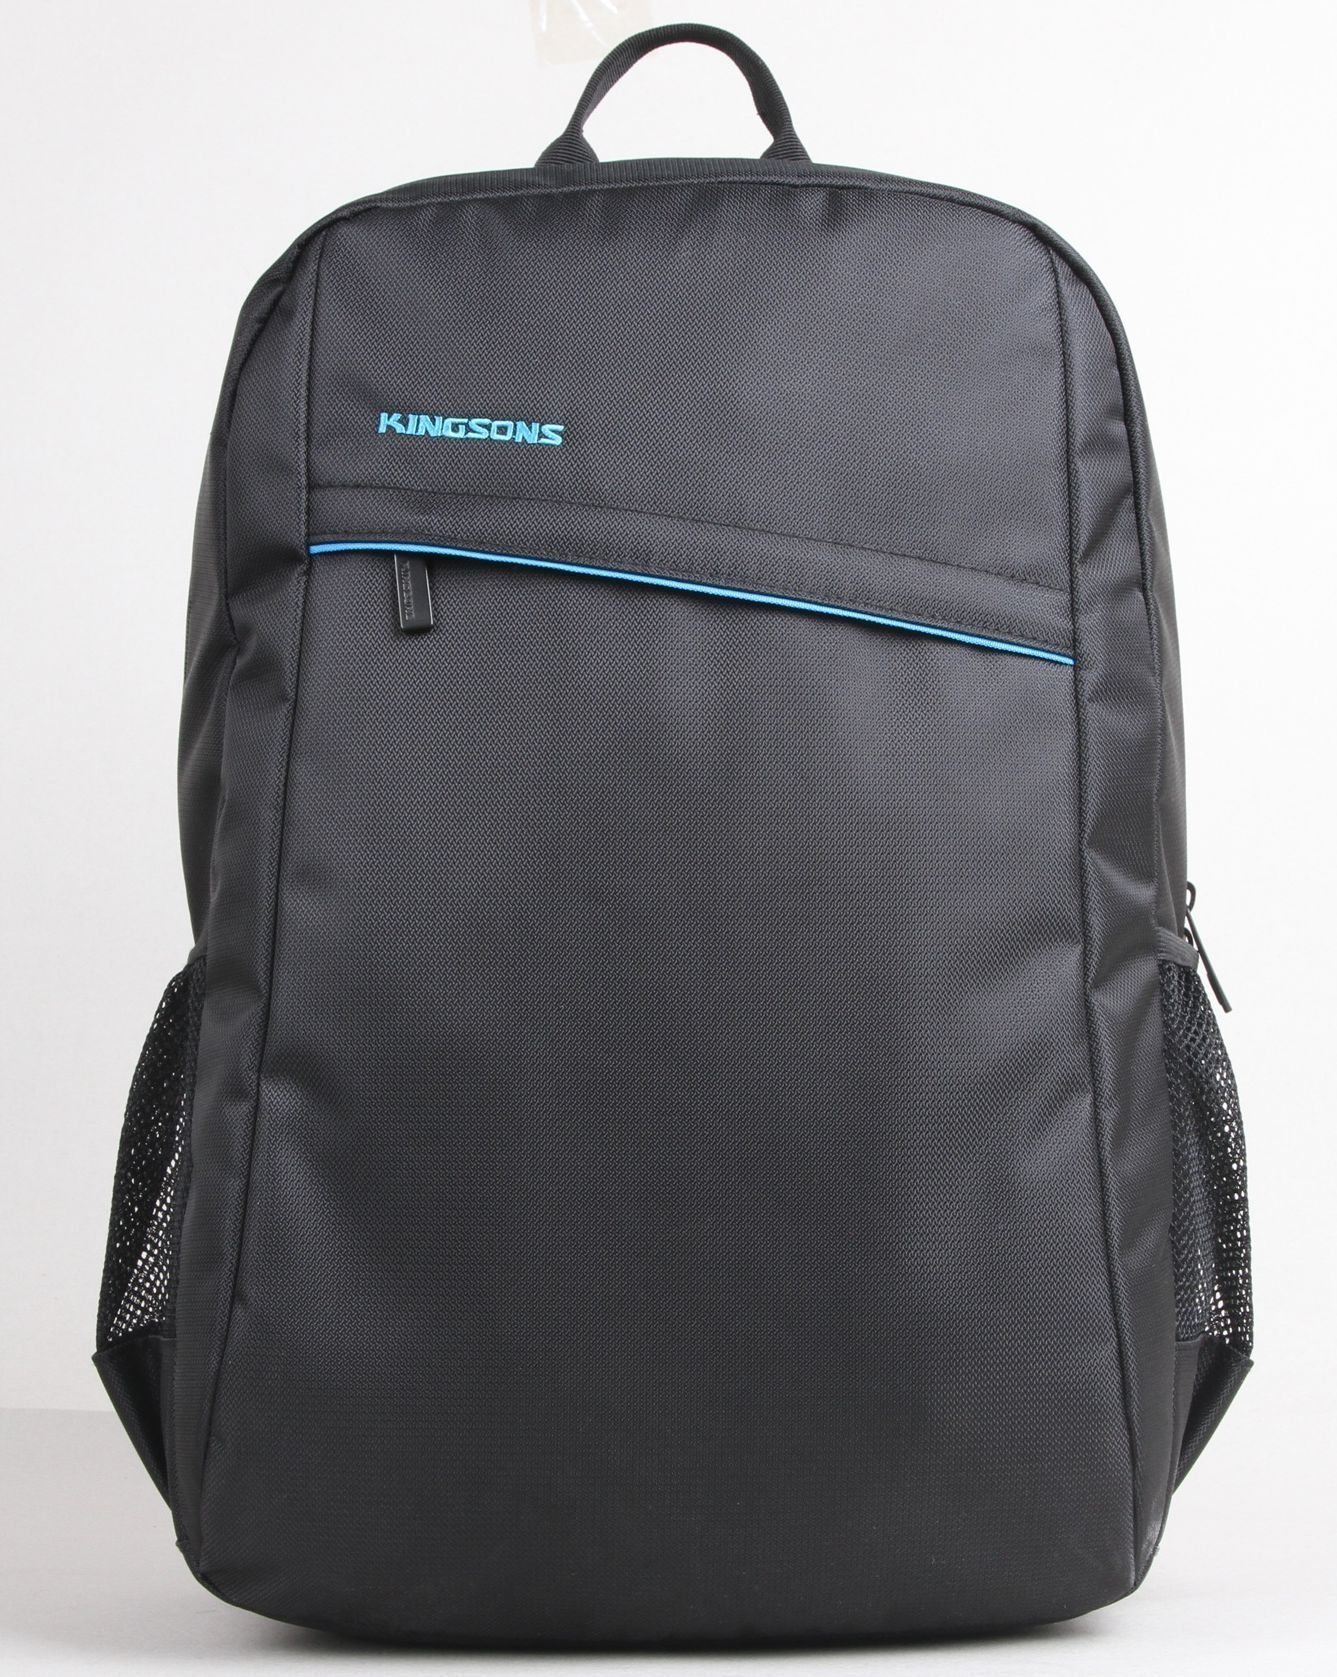 "Kingsons Laptop Backpack 15.6"" KF0047 :: Spartan Series"